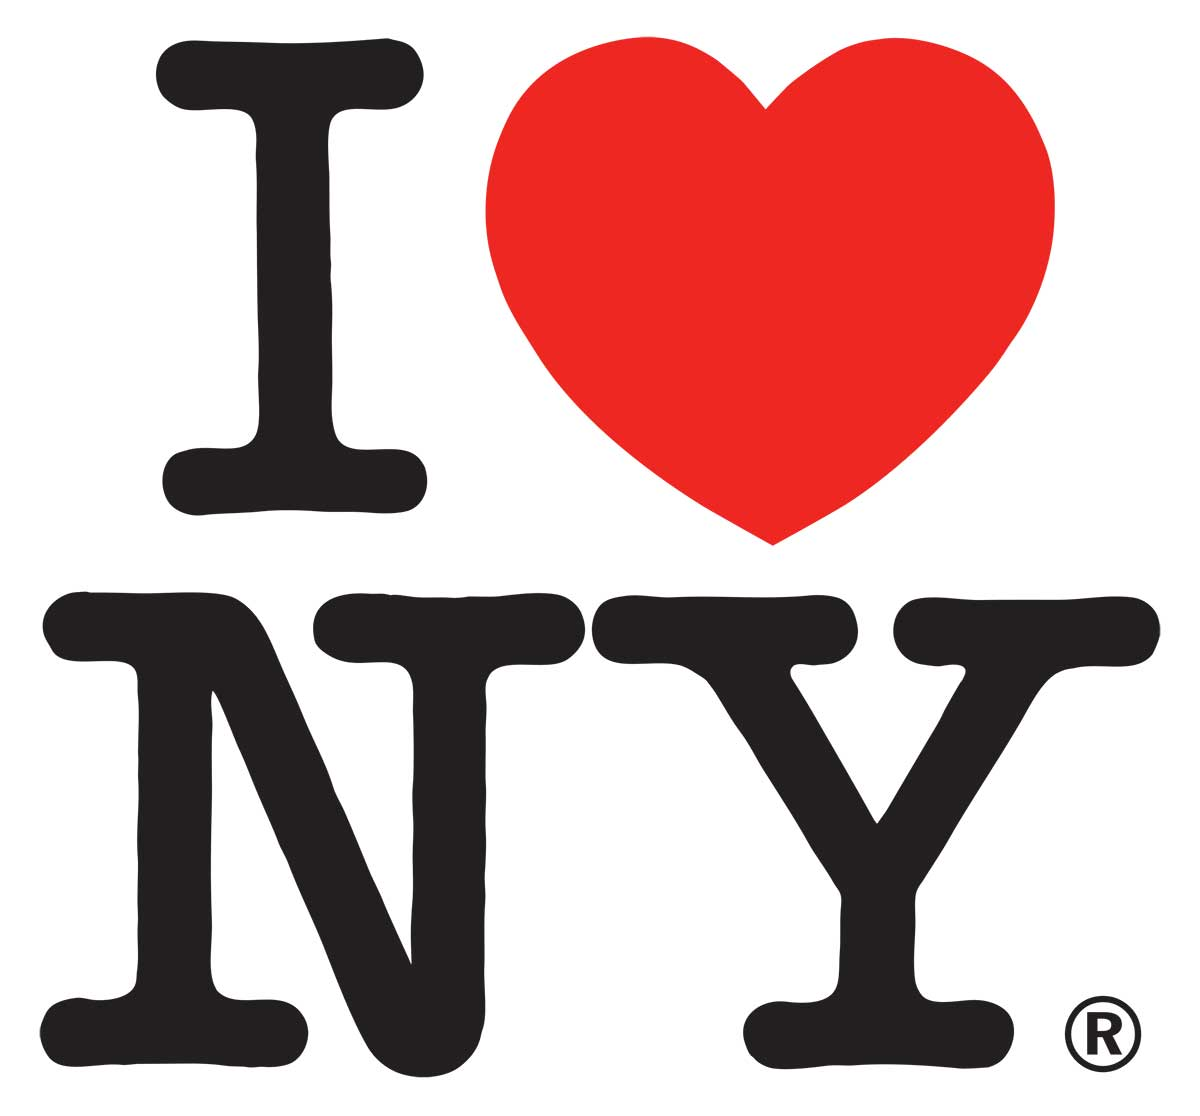 I Love New York Logo designed by Milton Glaser